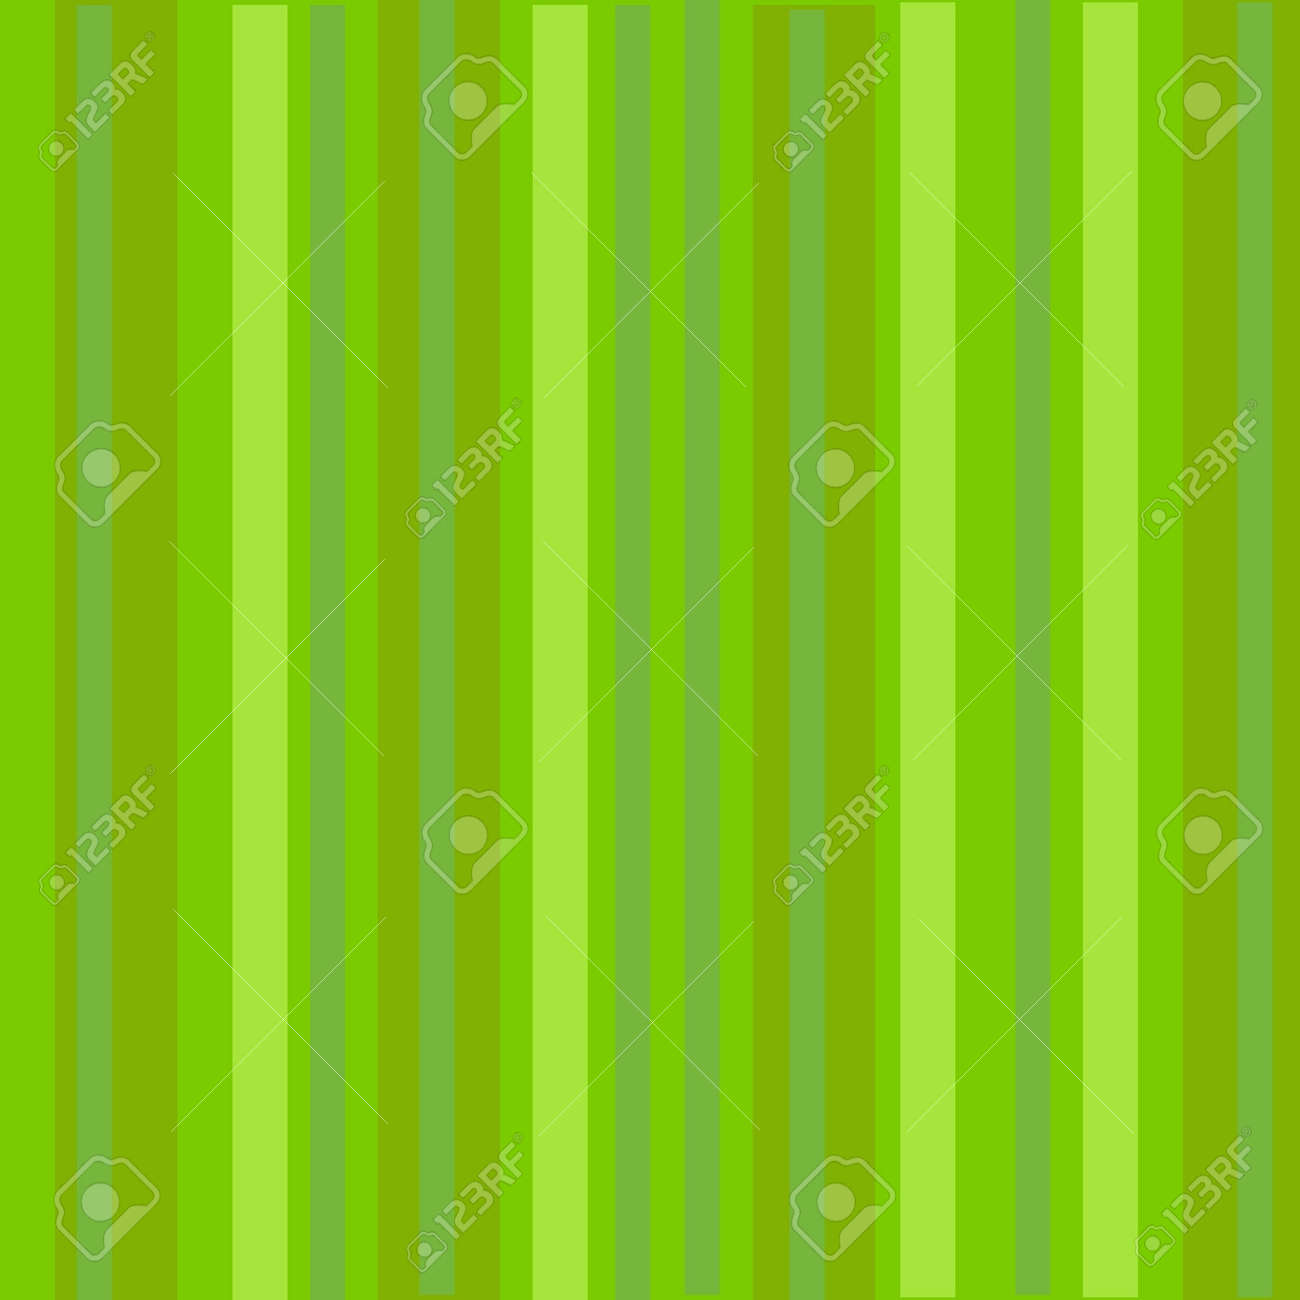 Simple Green Stripes Background Design Good For Wallpaper Etc Stock Photo